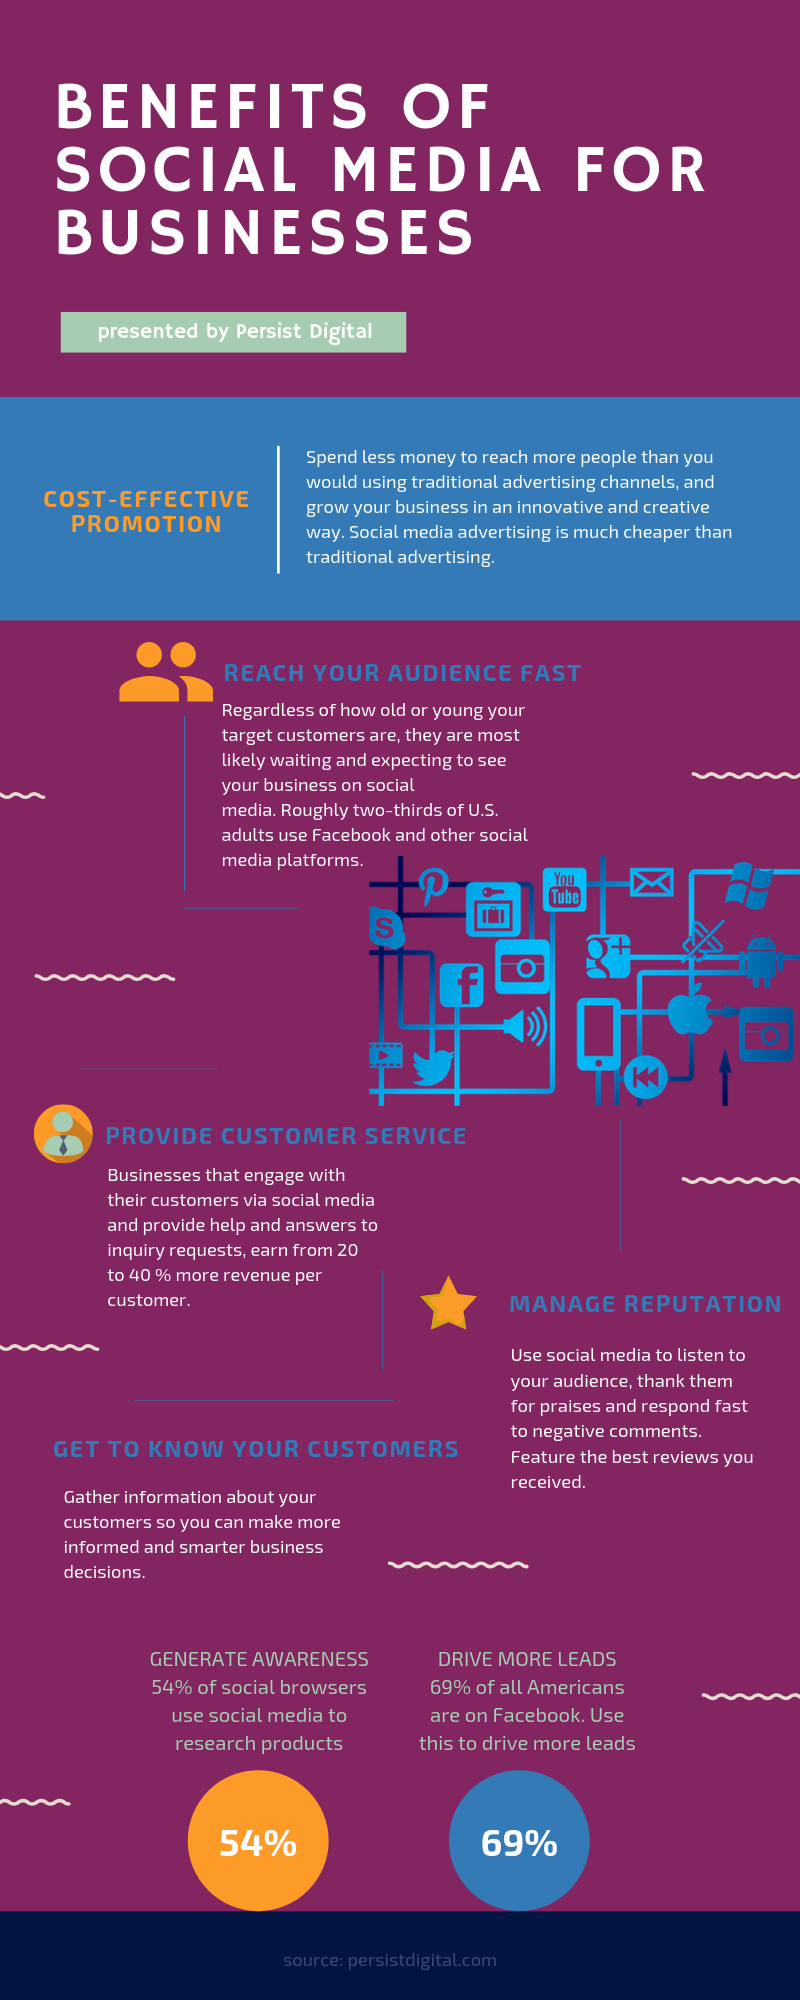 The benefits of social media for businesses INFOGRAPHIC